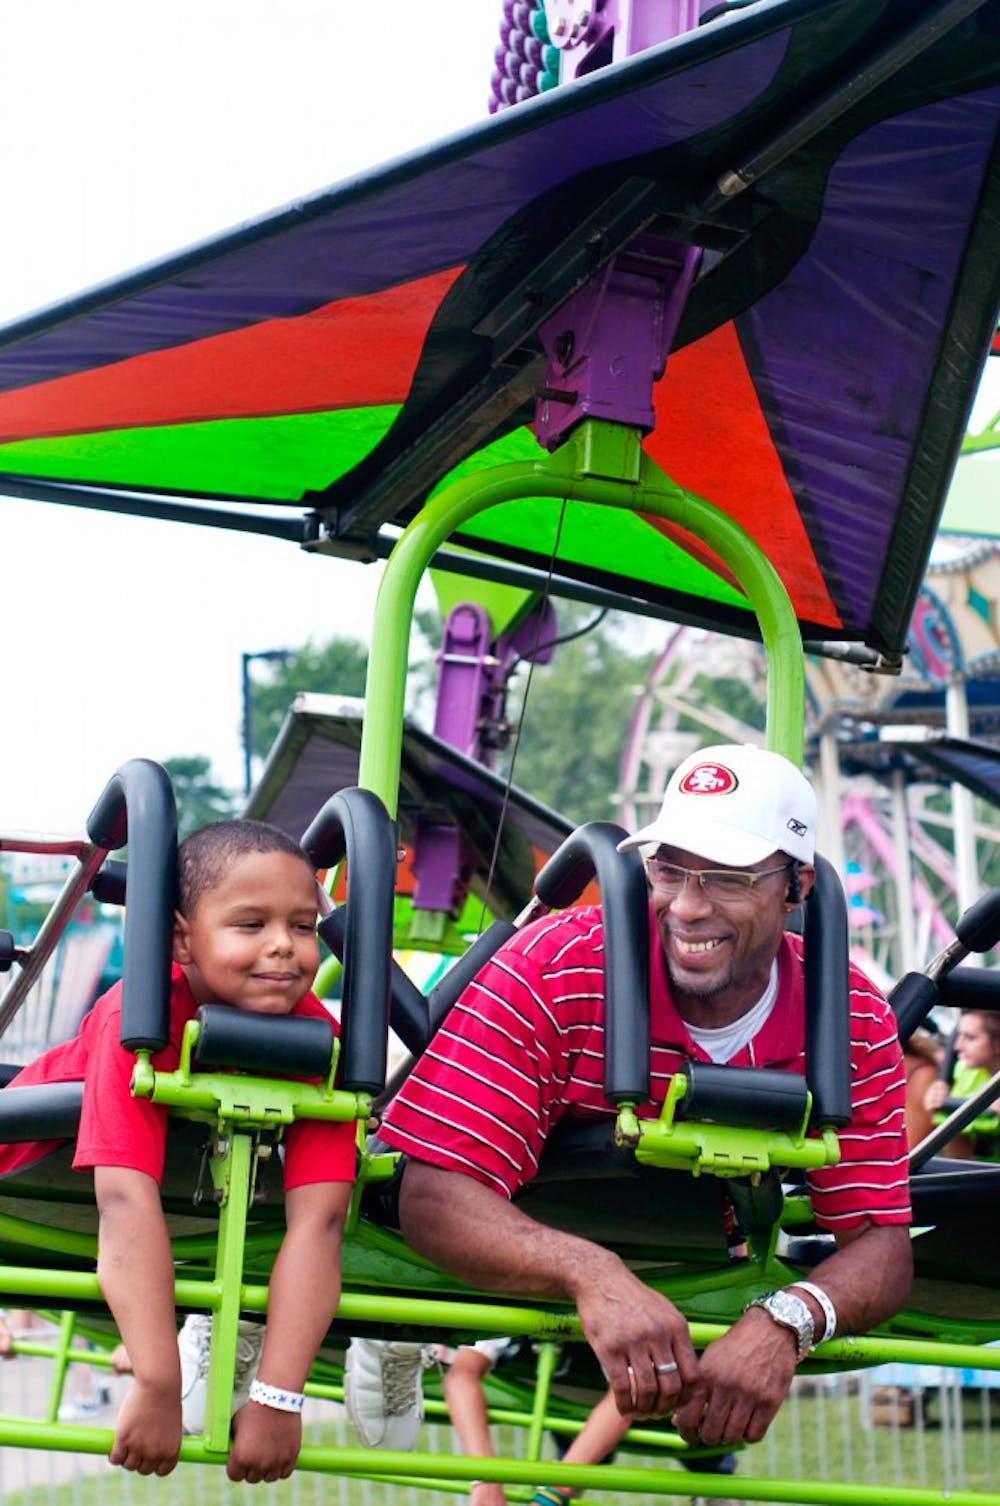 <p>Lansing residents Keith Scott and Keith Scott Jr., 6, enjoy a ride Tuesday afternoon at the ingham County Fair.</p>